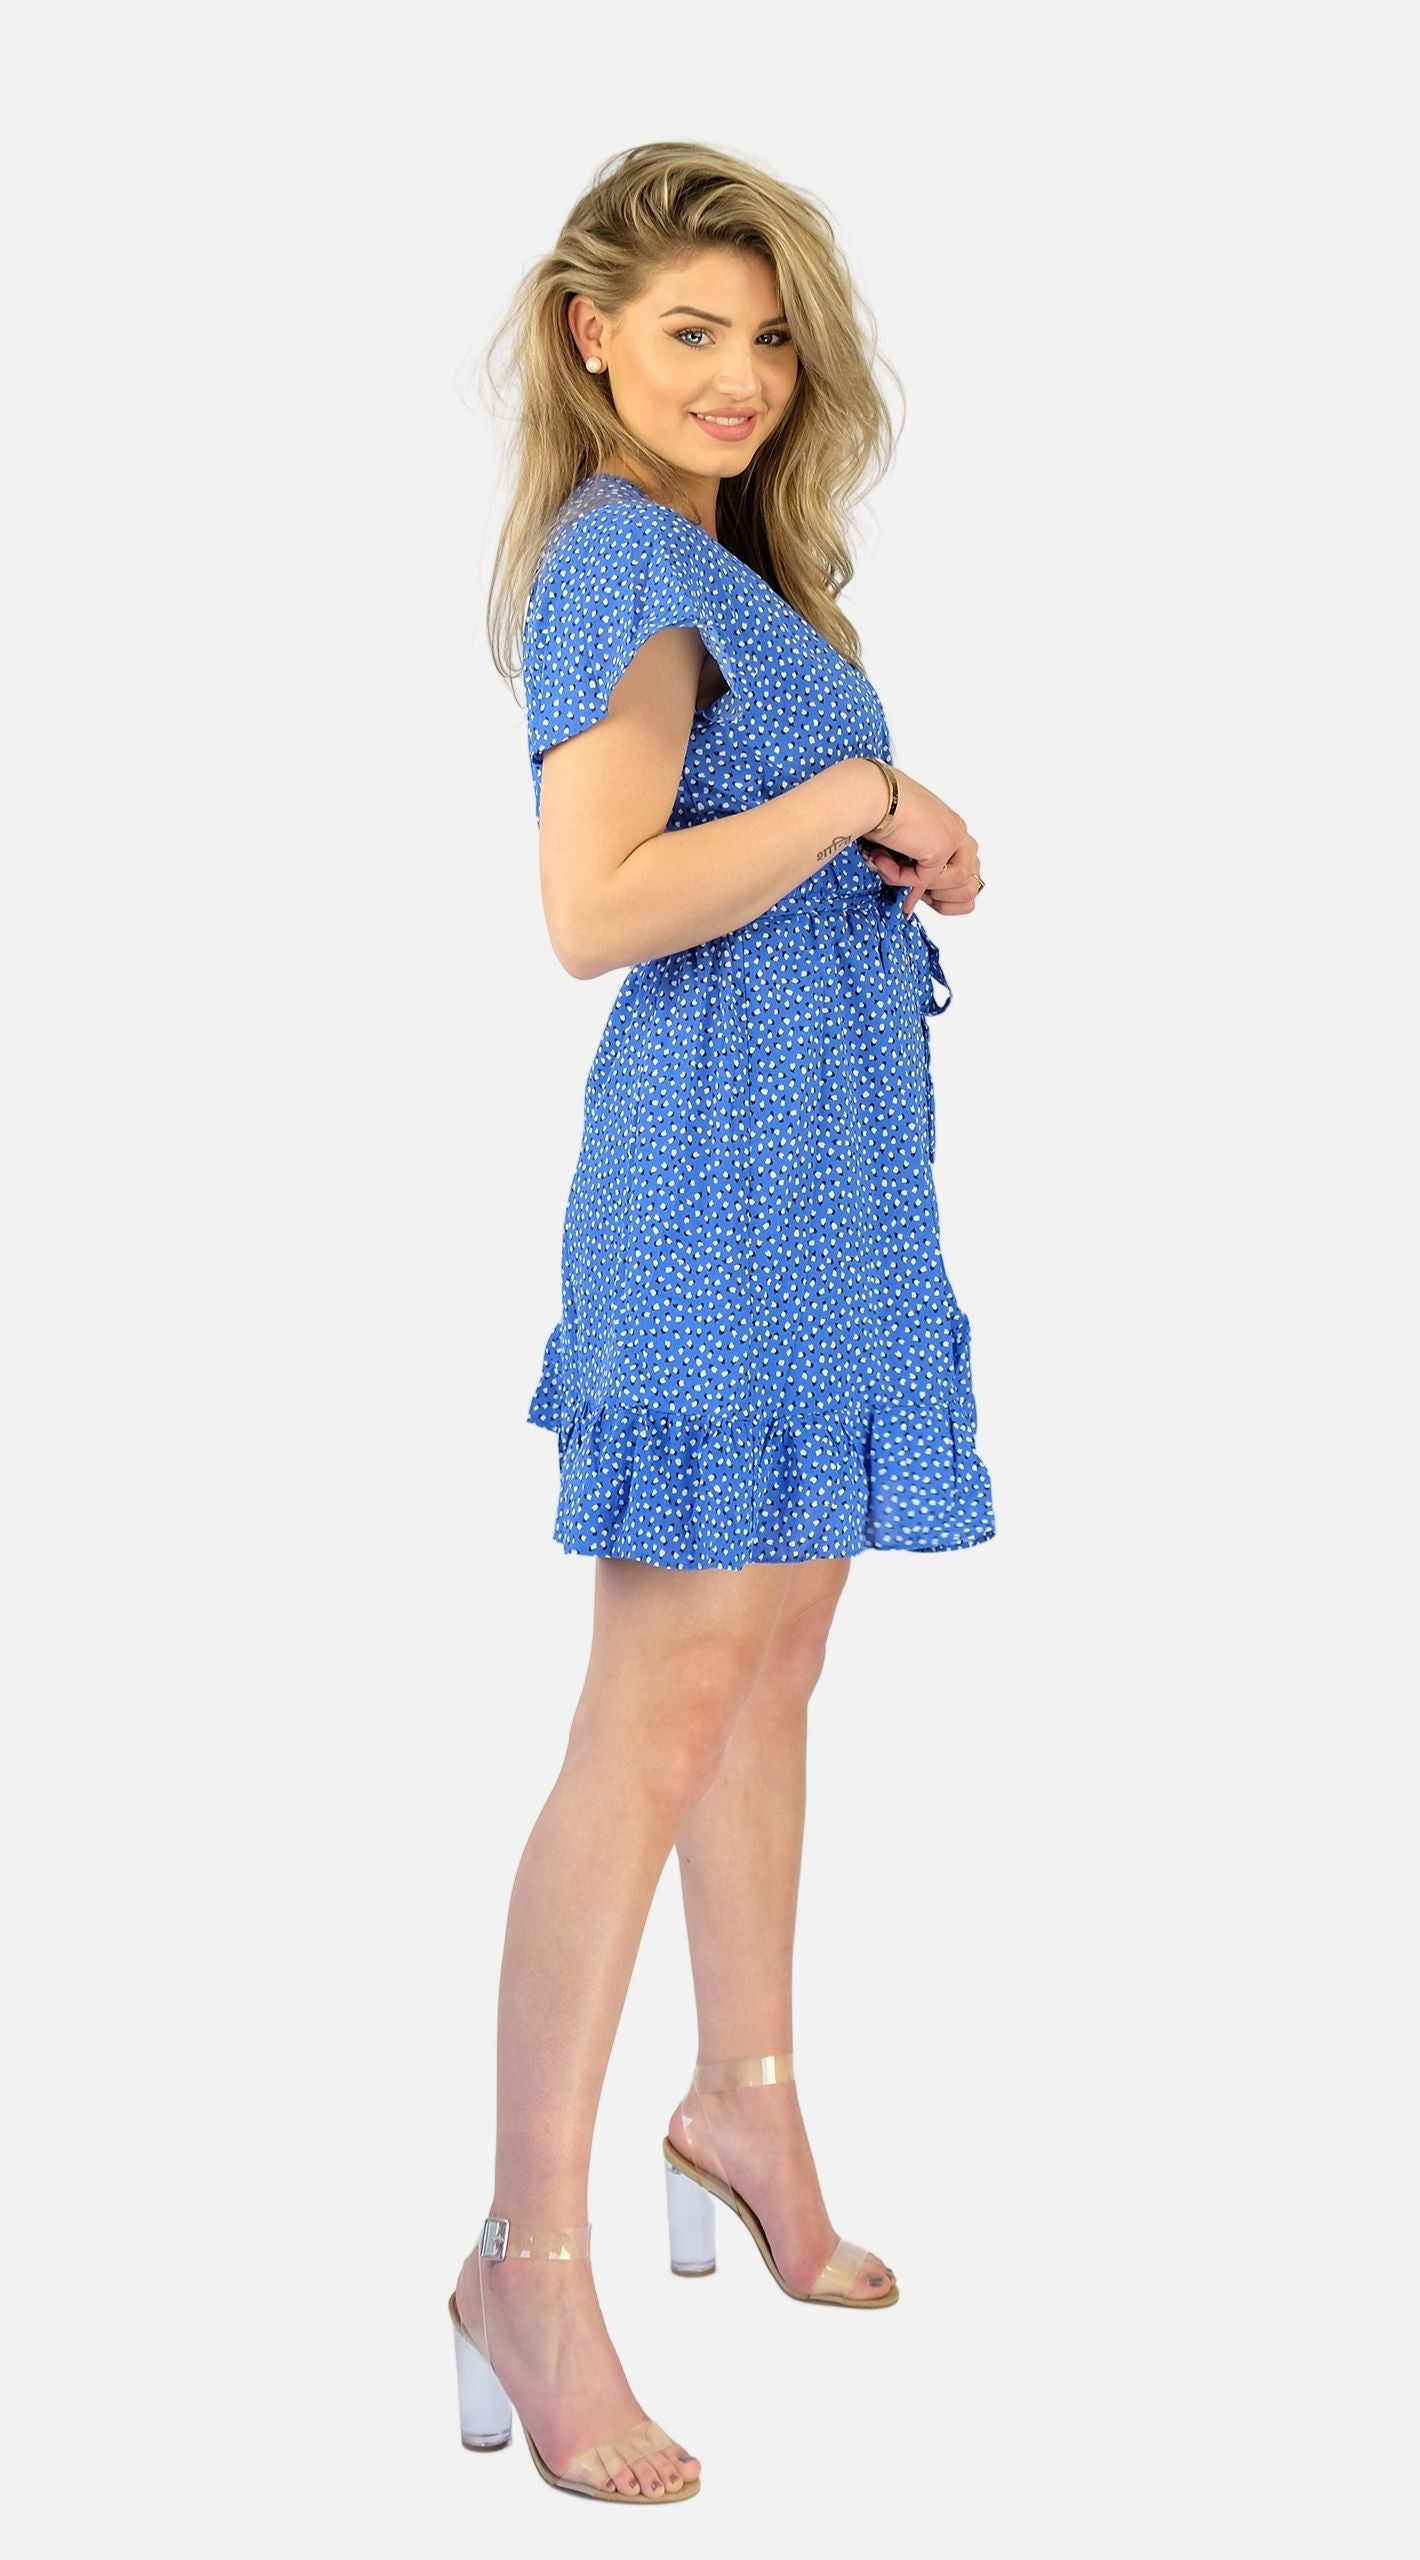 Blue Hearts Dress - Bibi